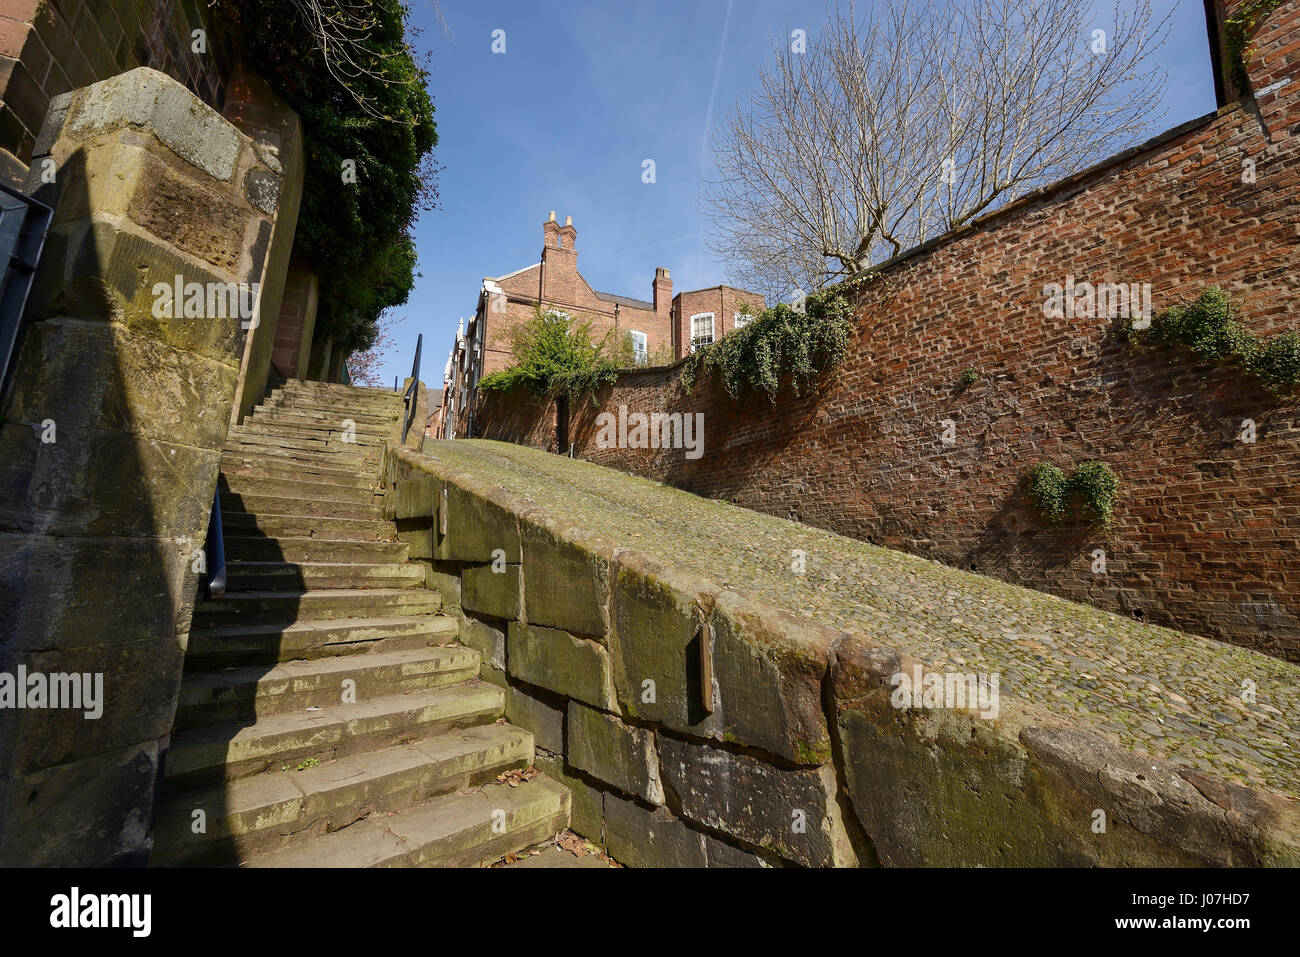 St Mary's Hill in Chester city centre UK is said to be one of the steepest streets in the world - Stock Image